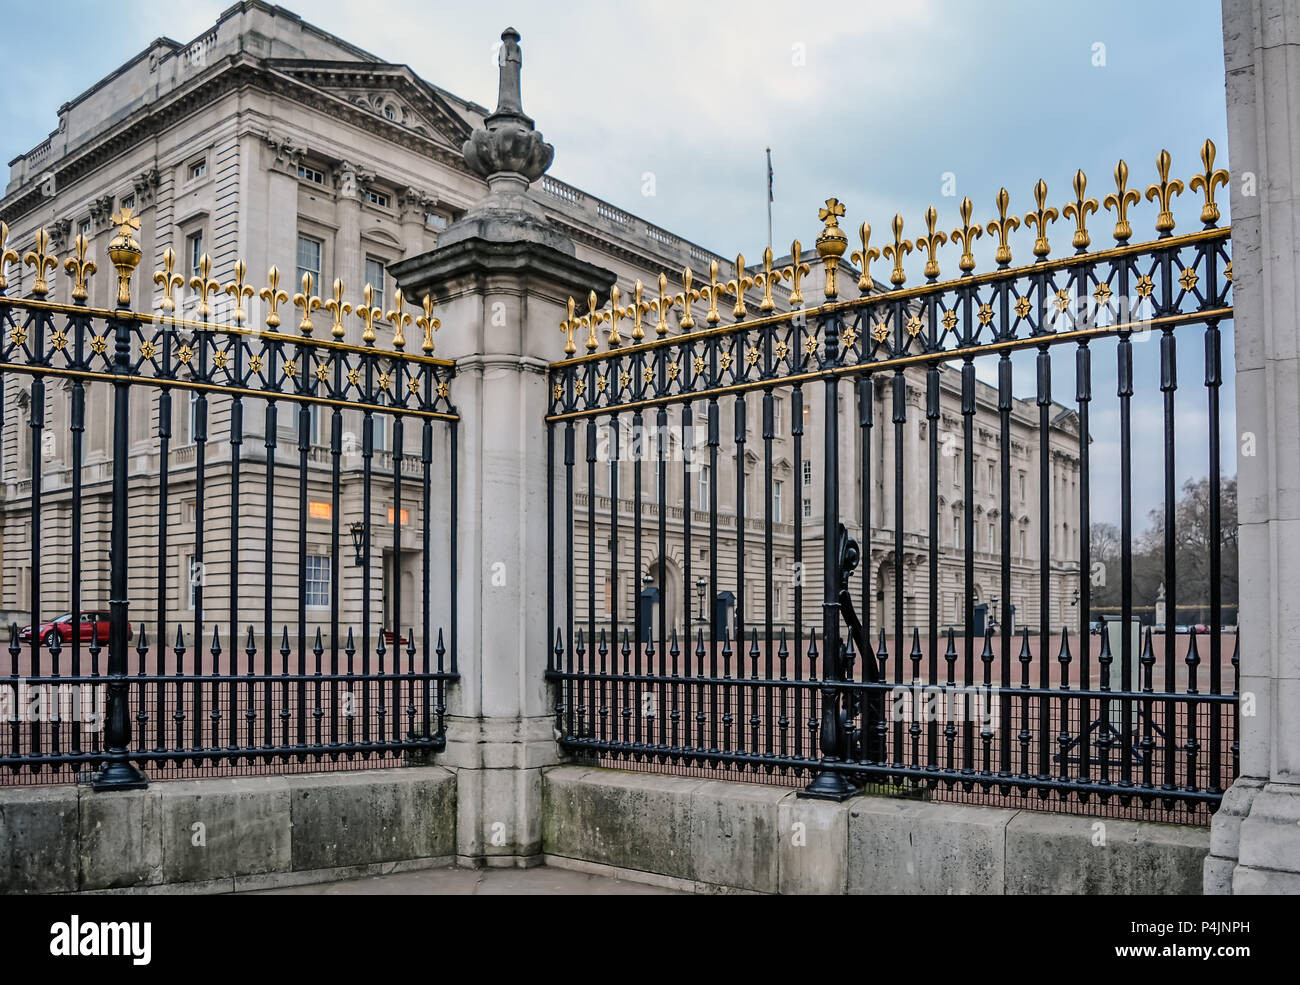 Part of the black cast-iron railings with gilded tips outside the Buckingham Palace, including the corner ashlar pier. - Stock Image